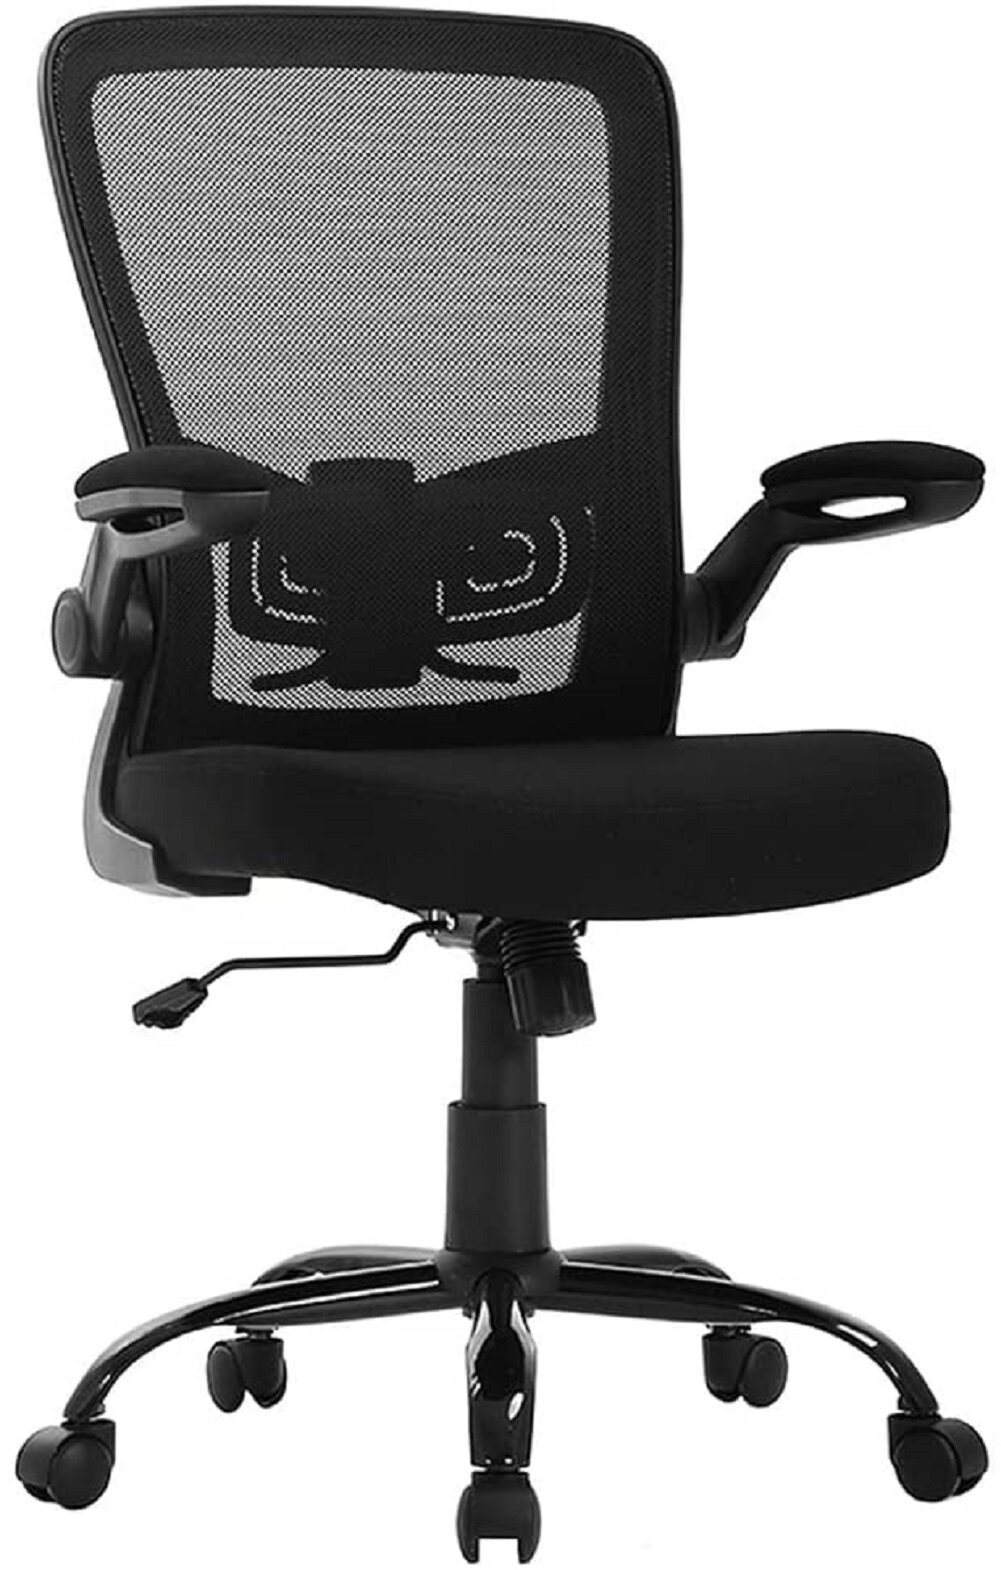 Ergonomic Office Chair Desk Chair Mesh Computer Chair With Lumbar Support  Flip Up Arms Swivel Rolling Adjustable Mid Back Computer Chair For Women  Men